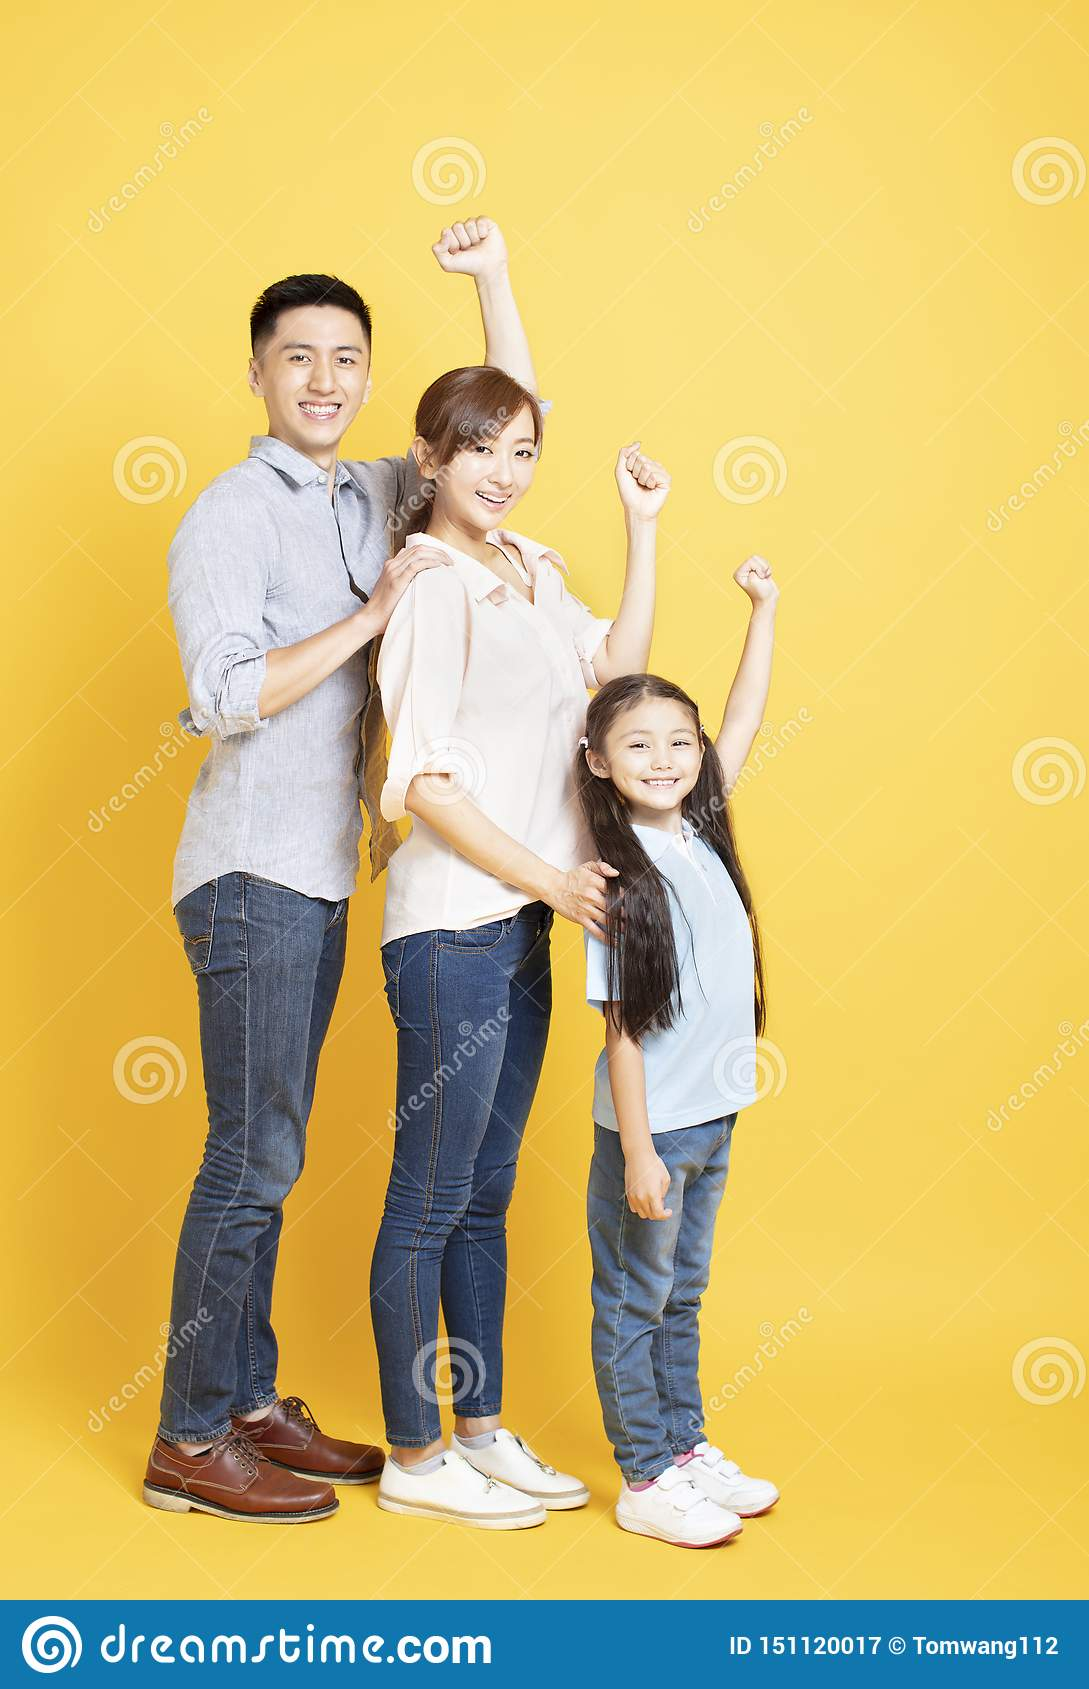 Full length of Happy young Family